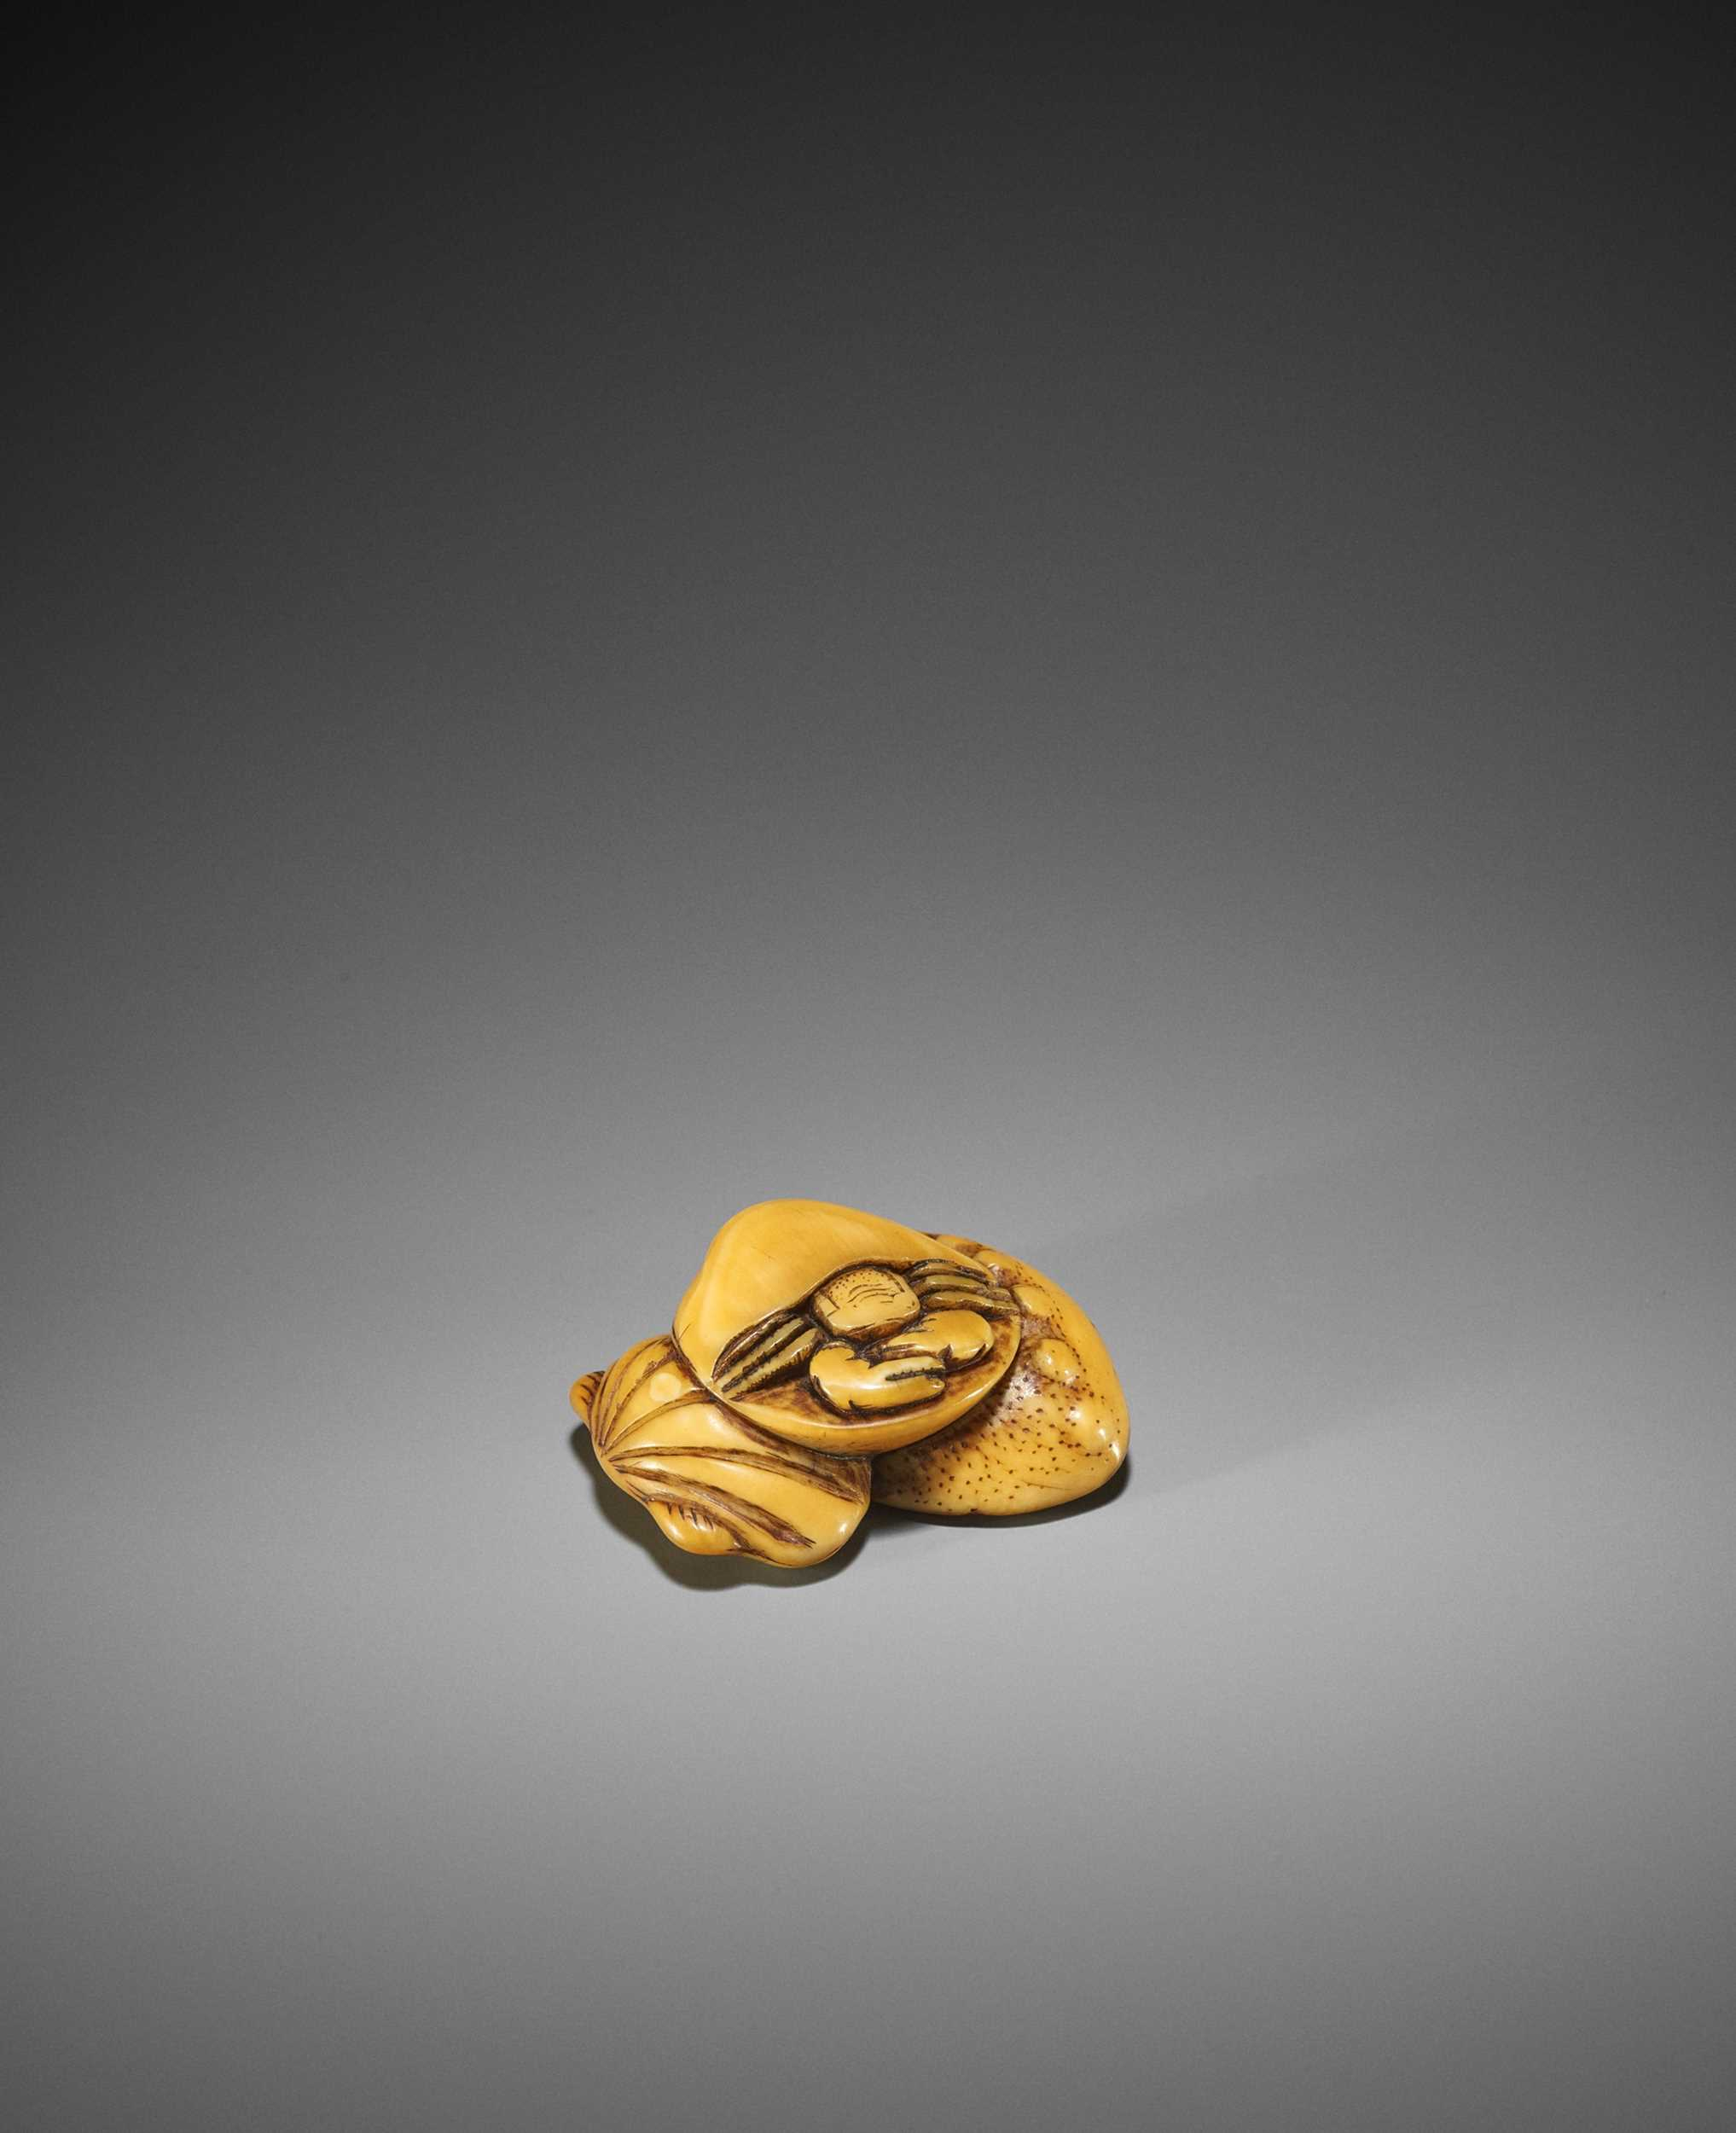 AN EARLY IVORY NETSUKE OF A HERMIT CRAB AND SHELLS